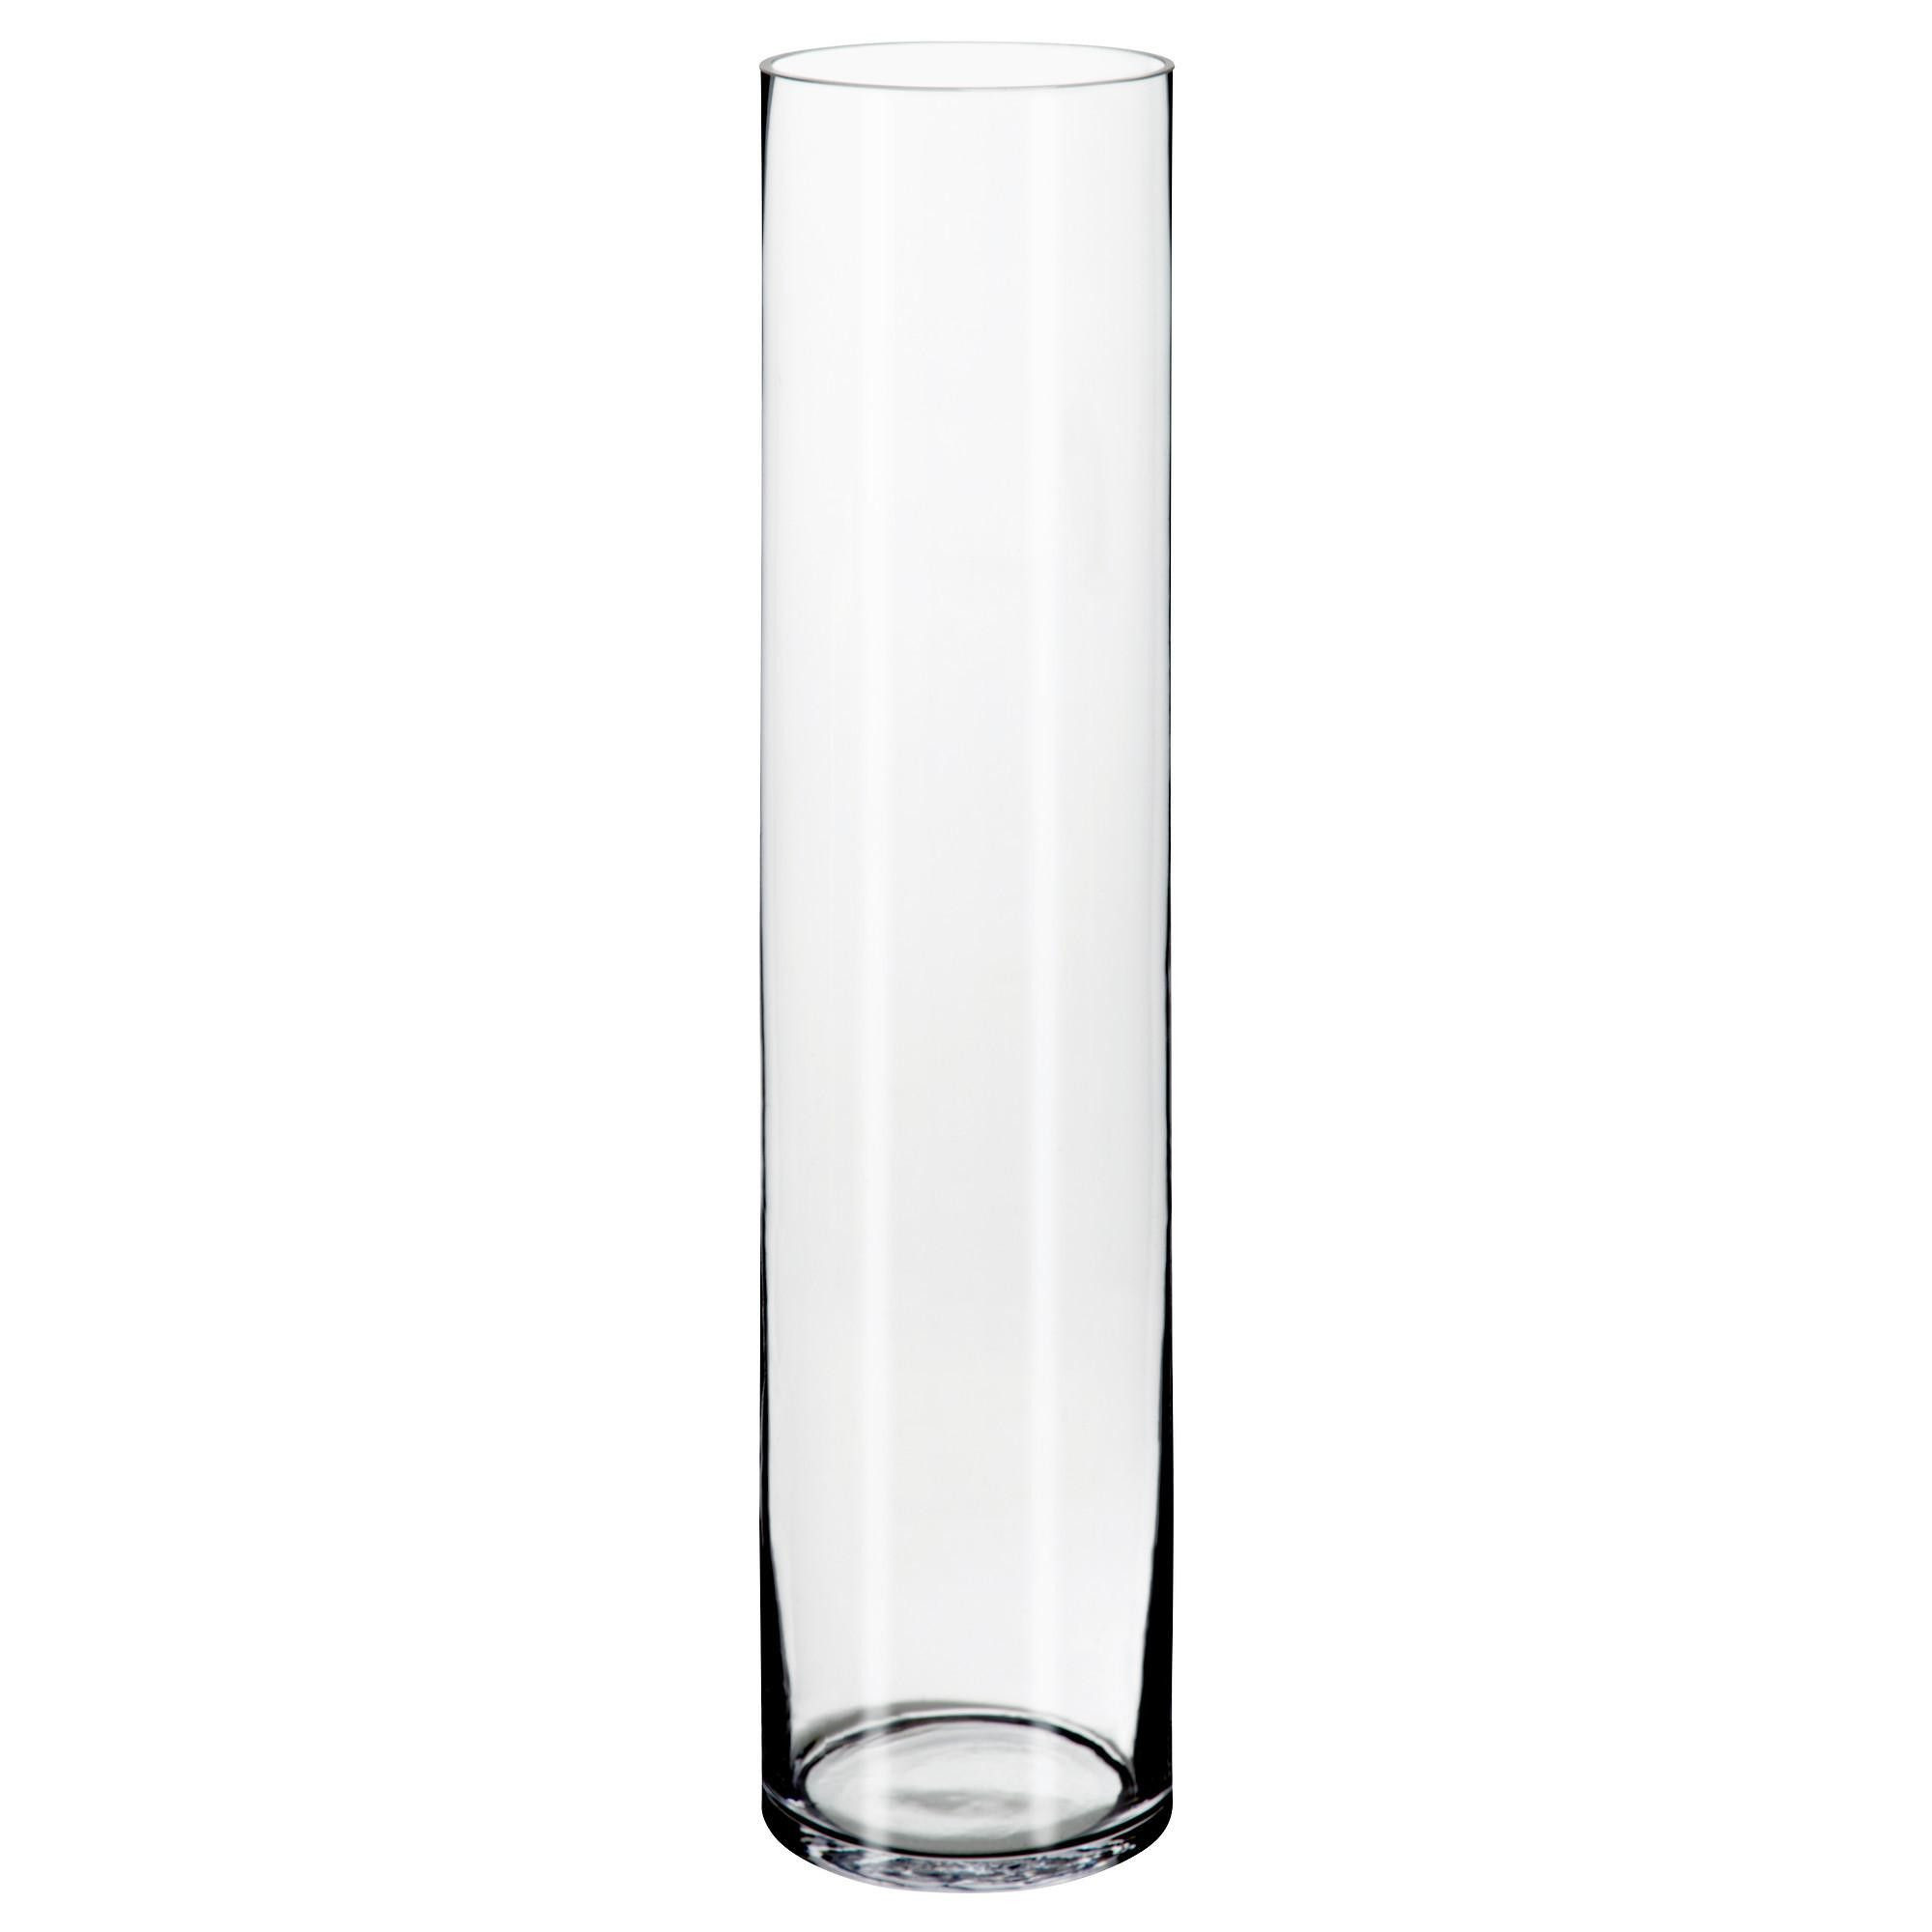 27 Fashionable White Frosted Glass Vase